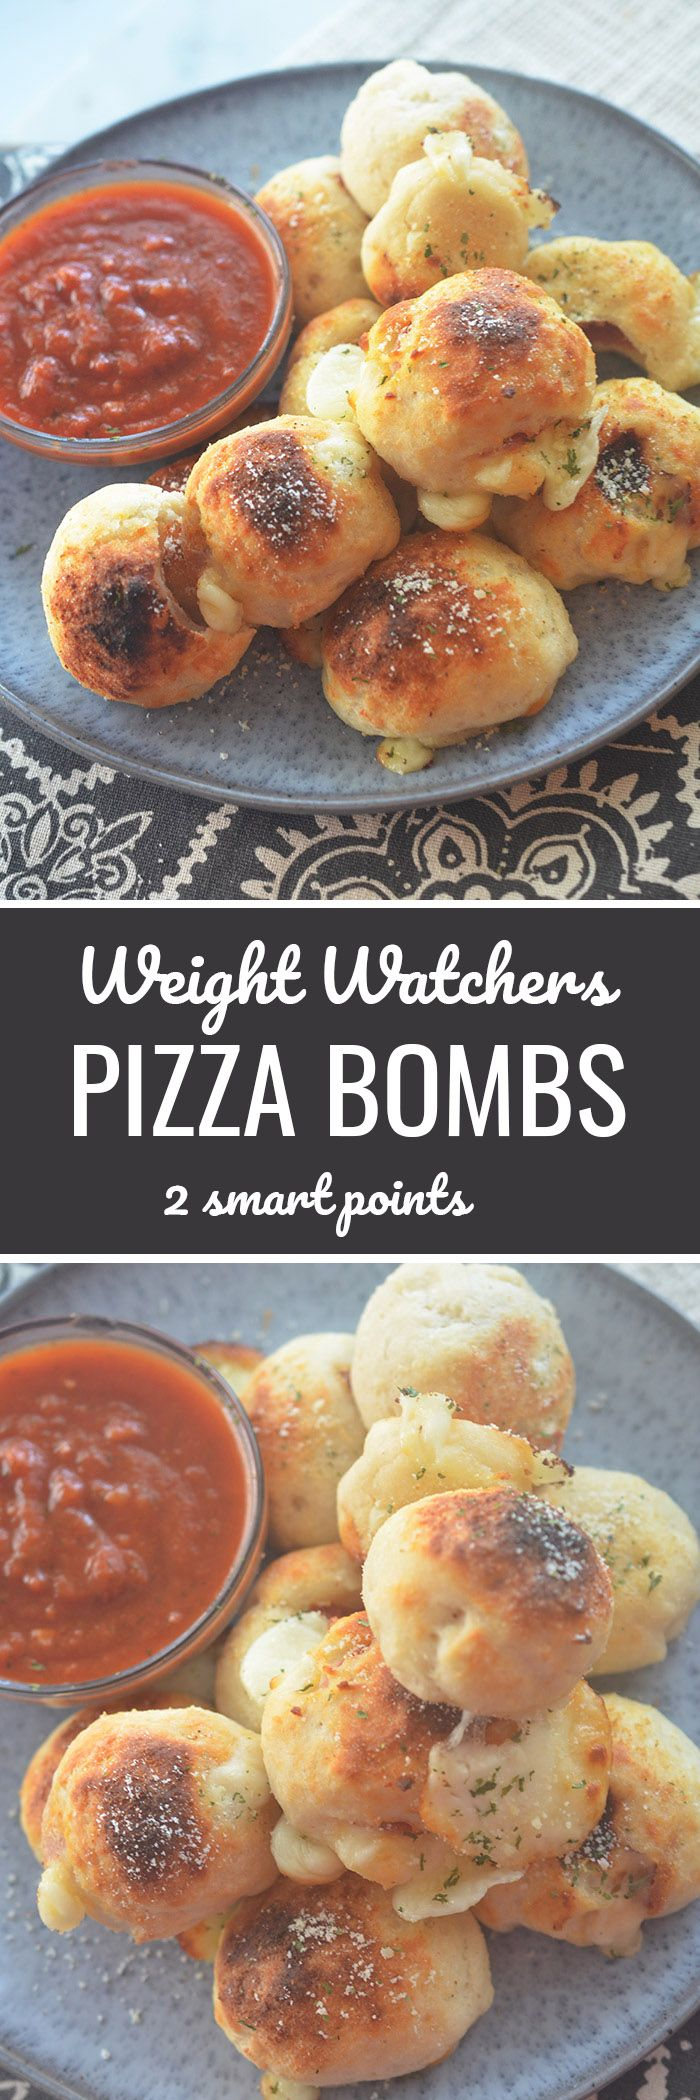 Weight Watchers Pizza Bombs 2 smart points - Recipe Diaries #weightwatchers #pizza #pizzaparty #healthy